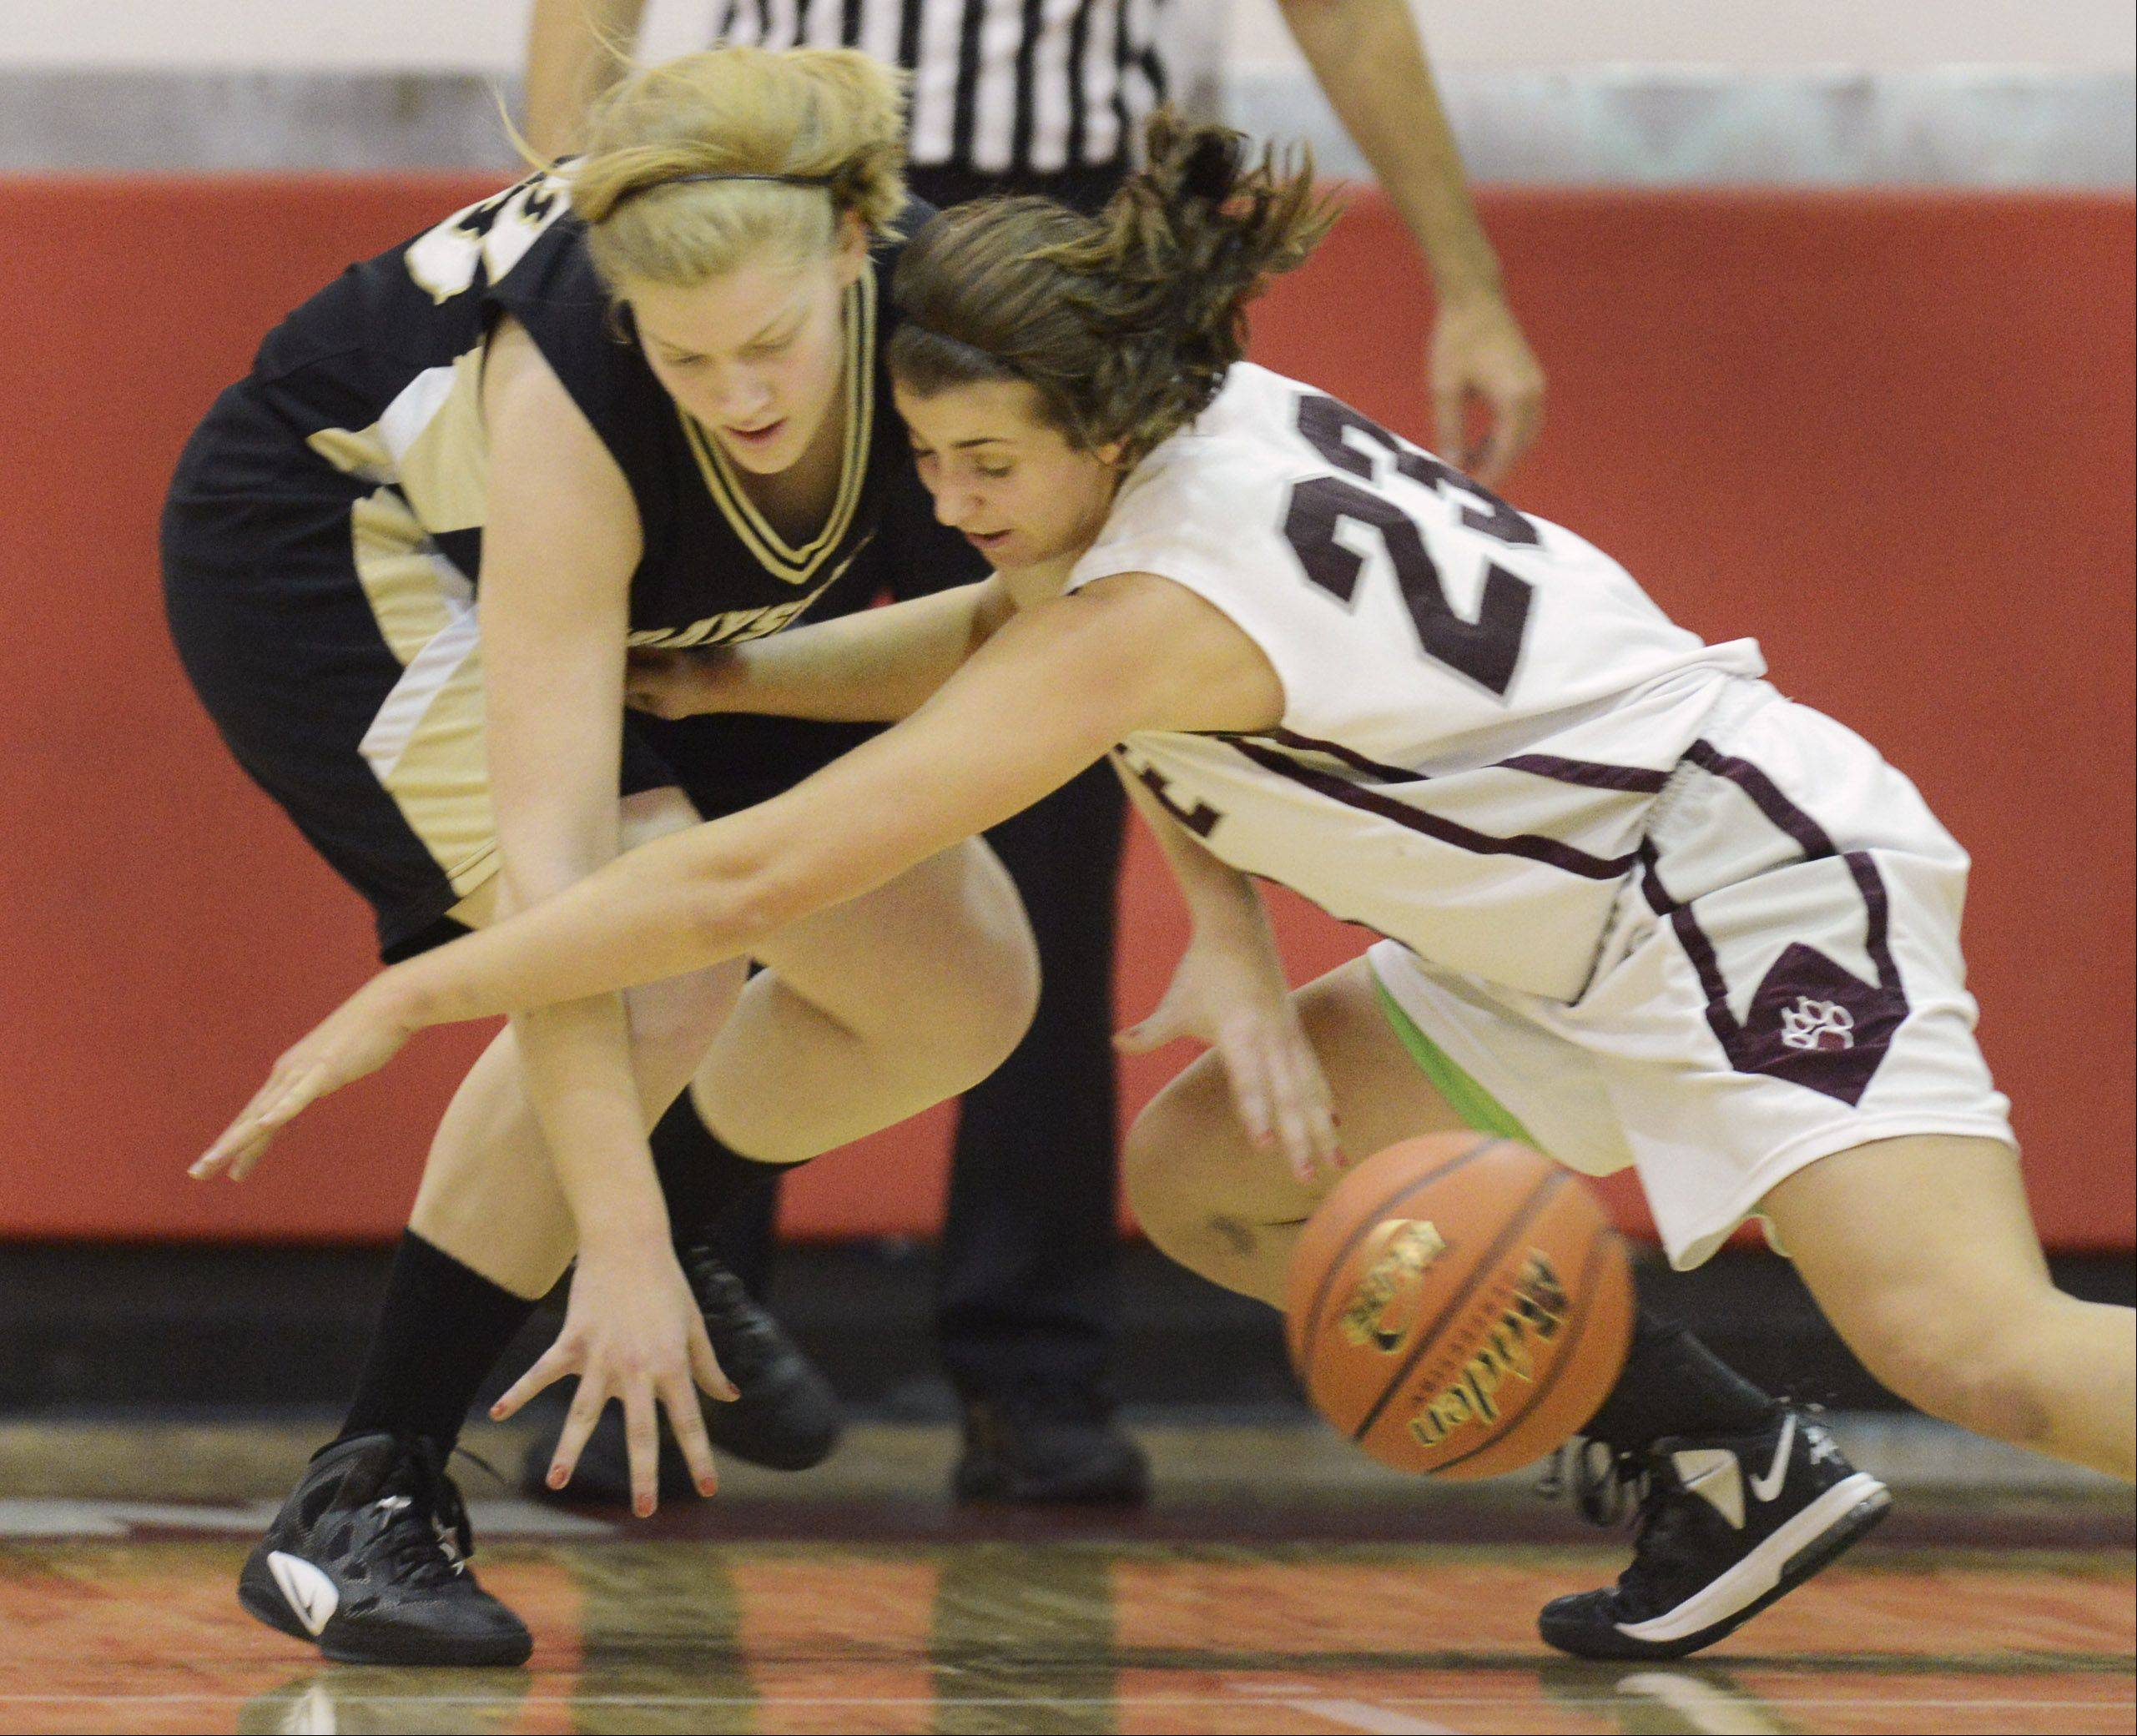 Grayslake North's Joanna Guhl, left, and Prarie Ridge's Alex Neckopolous try to control a loose ball during Friday's game at Mundelein.